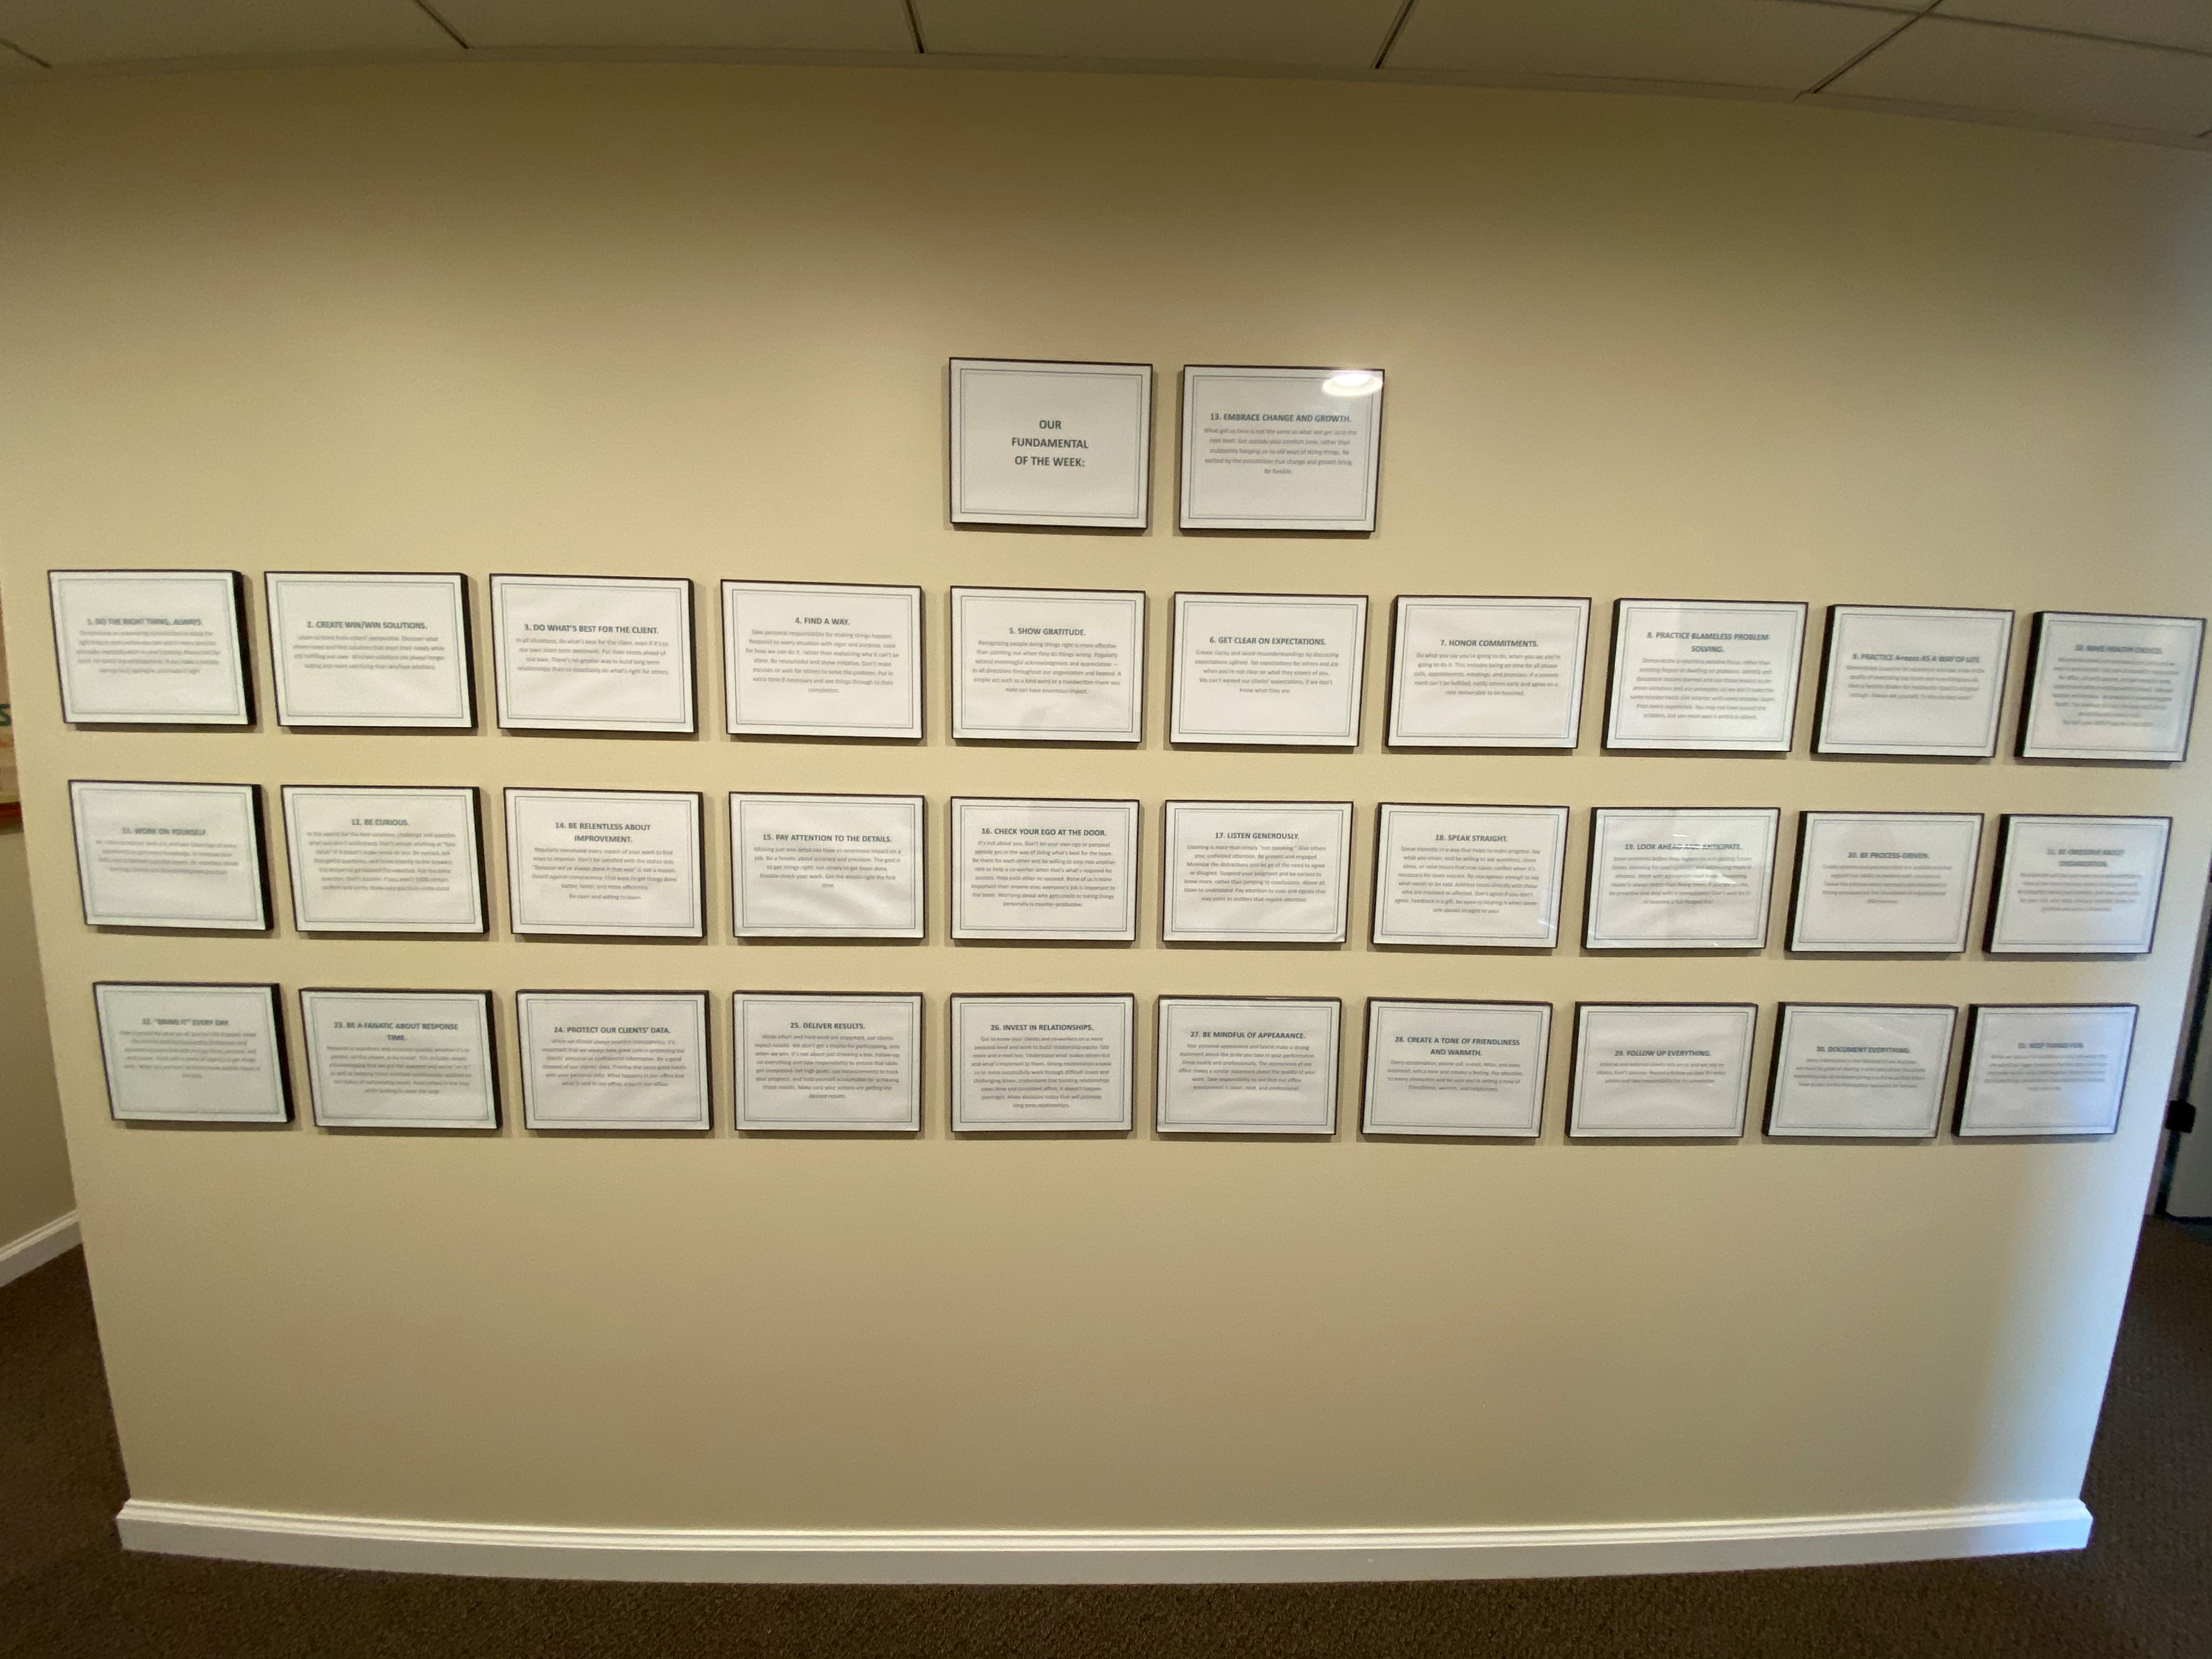 31 Fundamentals framed and hanging on wall.